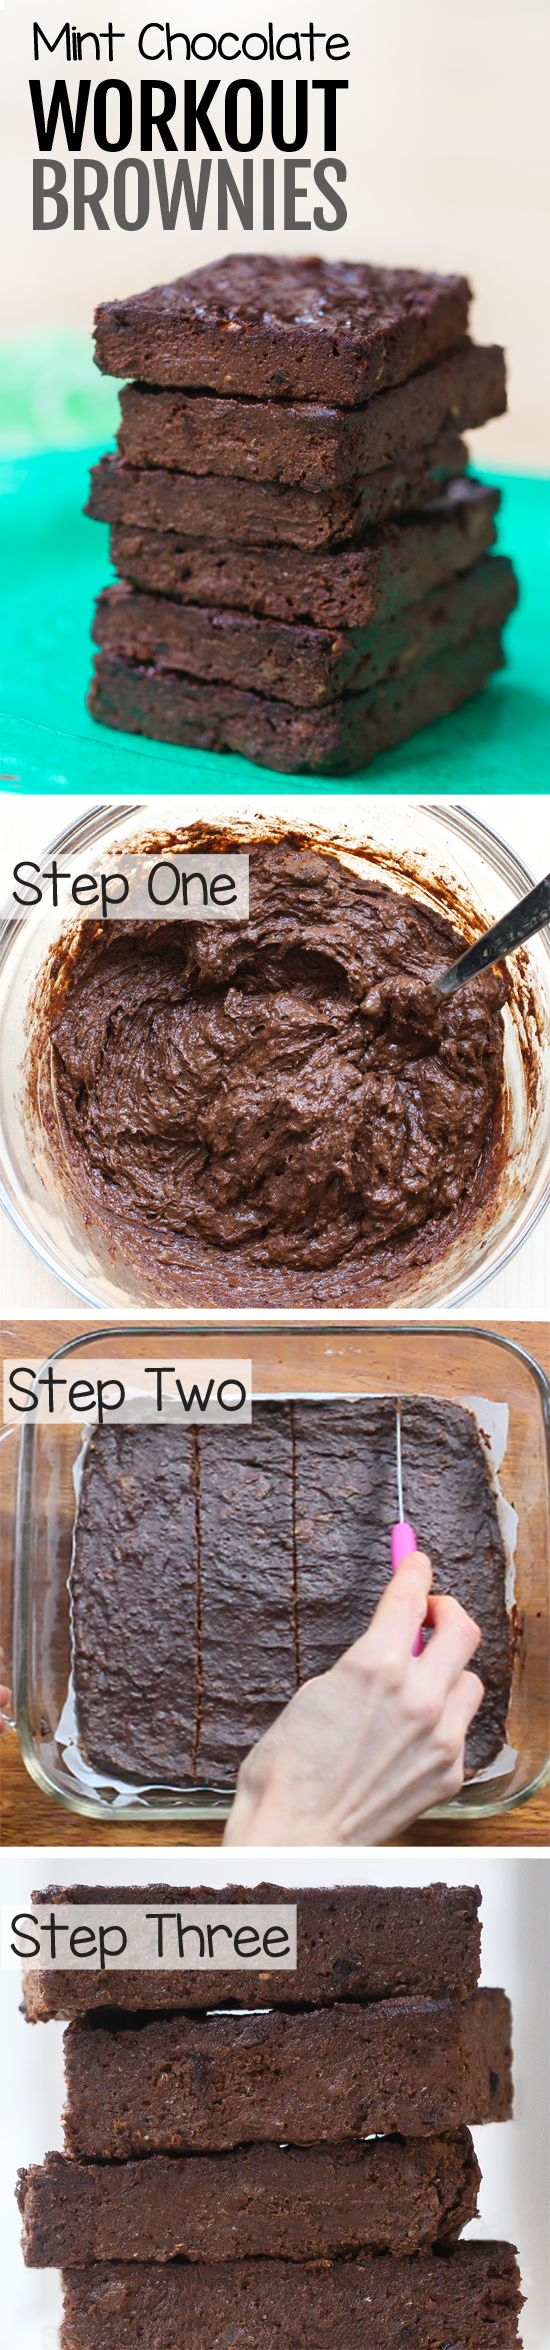 """If you are one of those people who love healthy desserts, definitely add these healthy brownies to your """"must try"""" list!"""